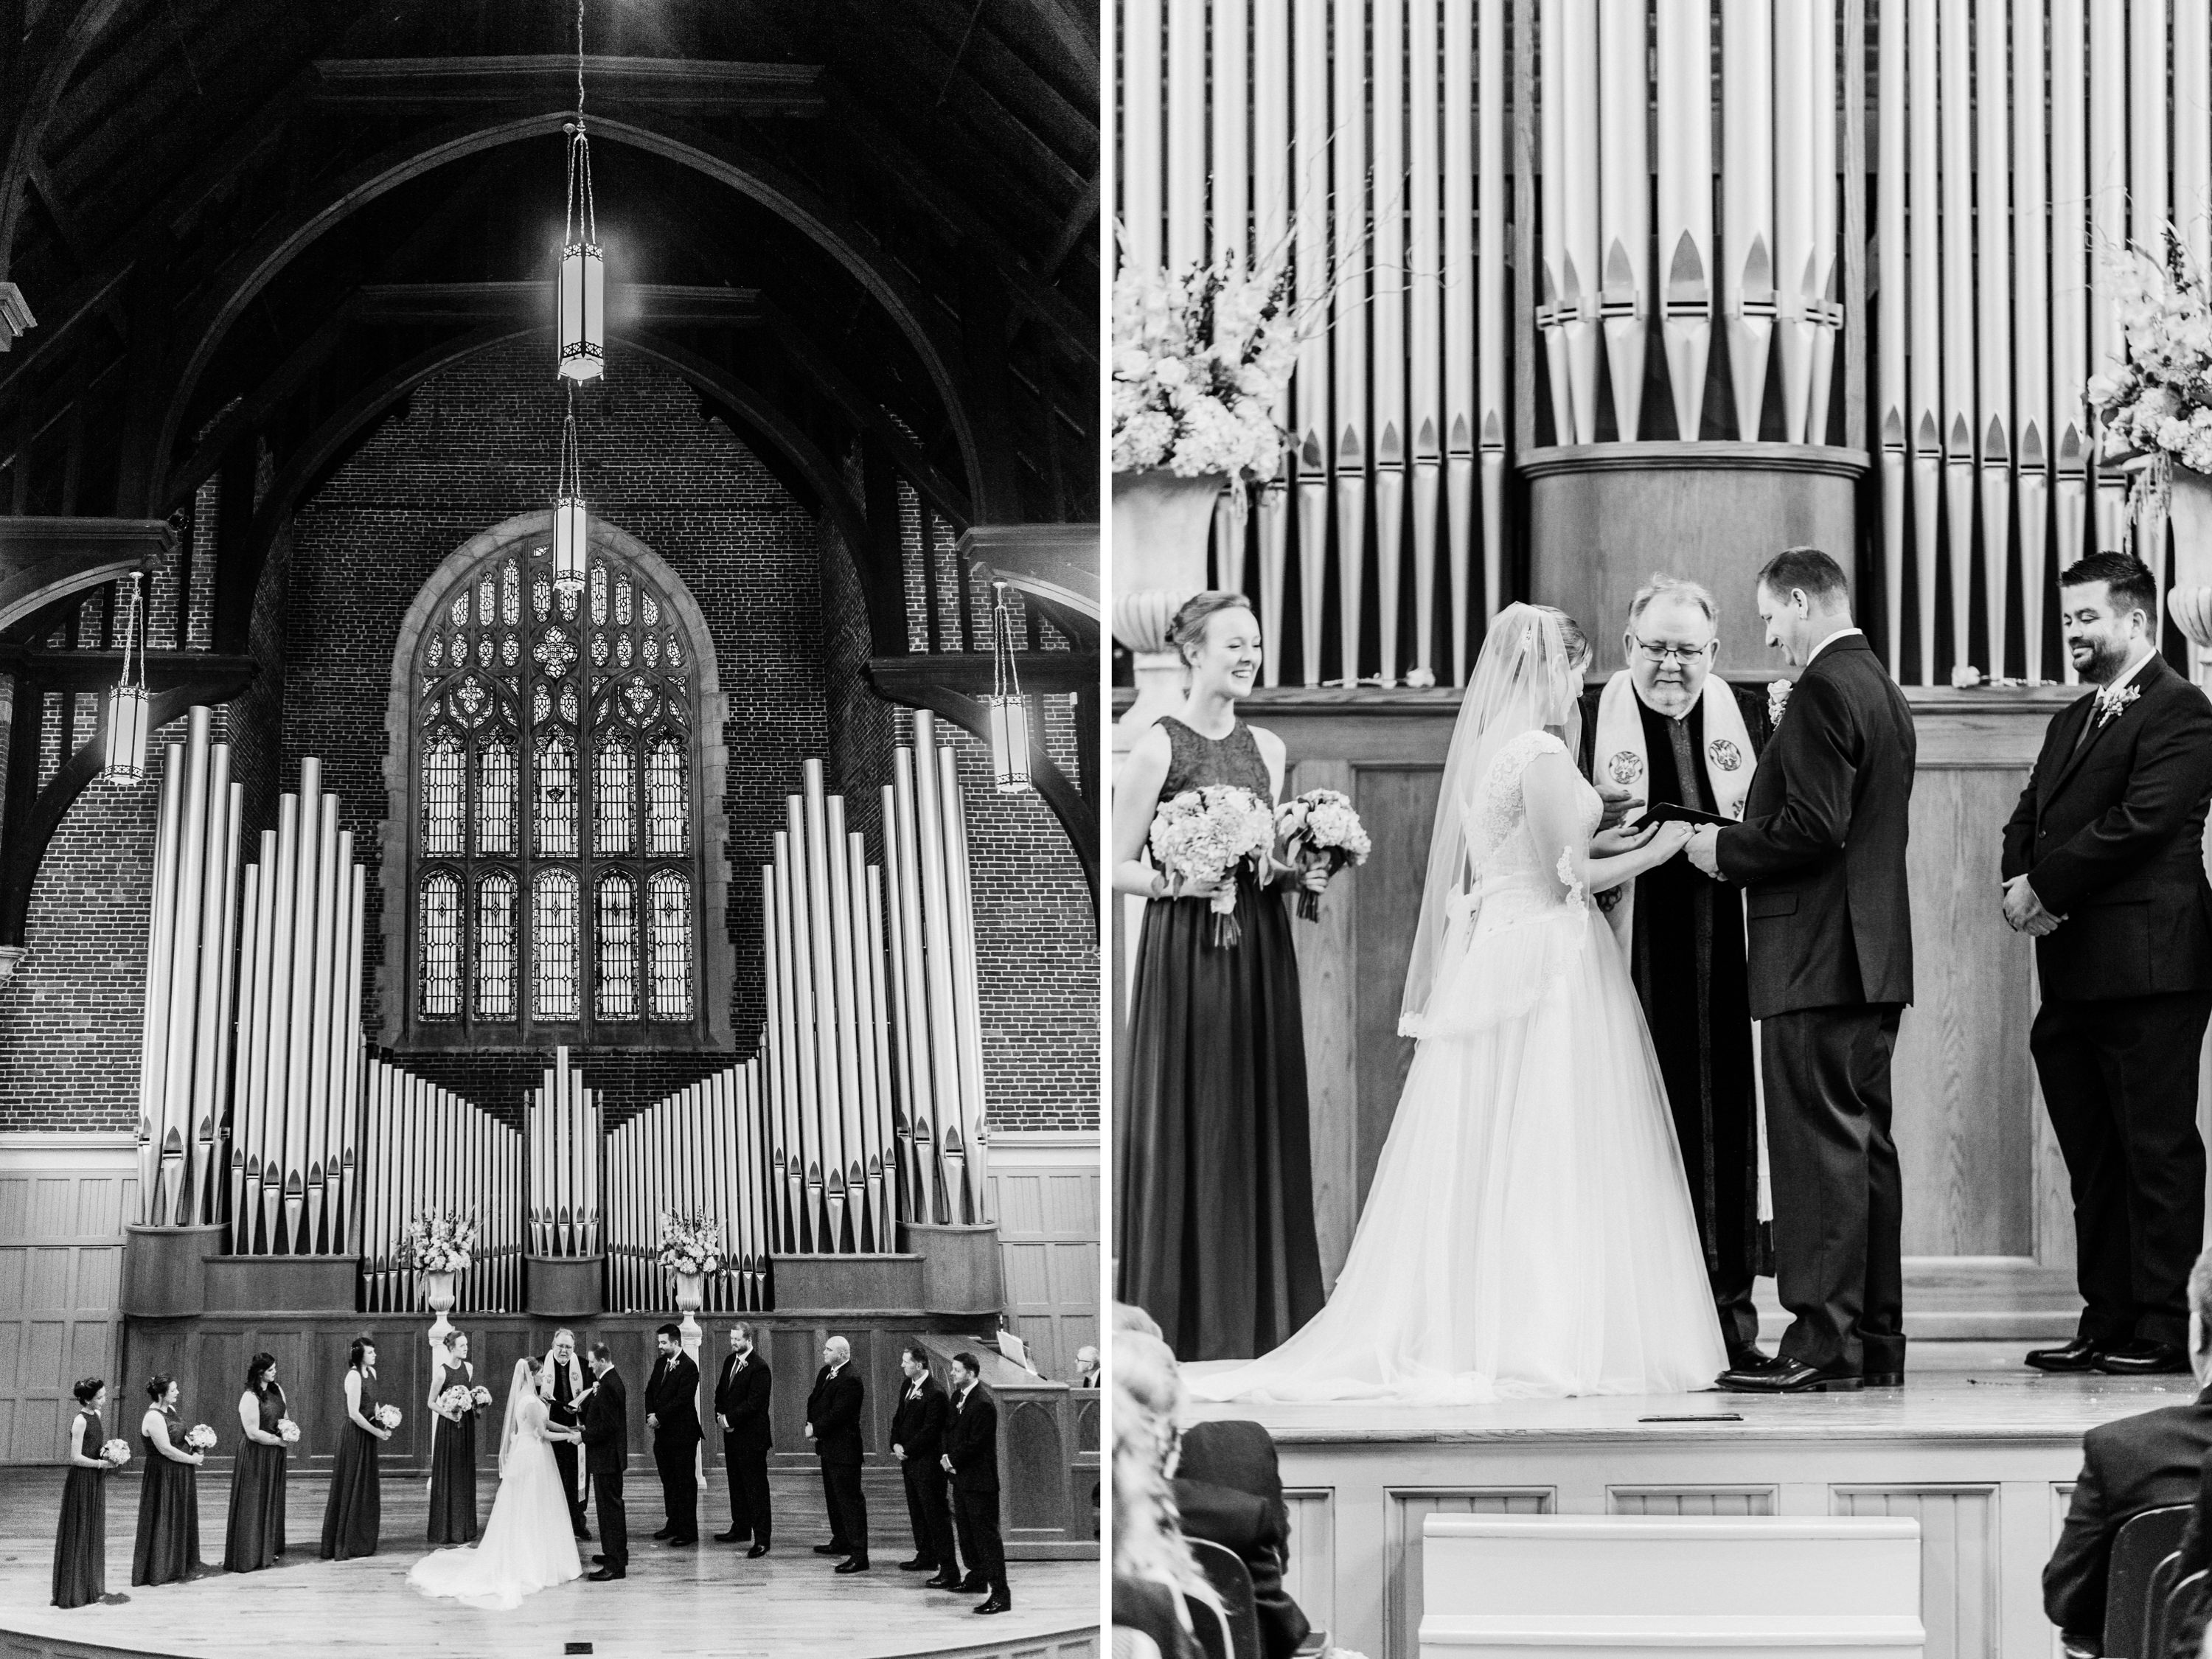 MAULDIN_WEDDING_MONTGOMERY_ALABAMA_WEDDING_PHOTOGRAPHY_64